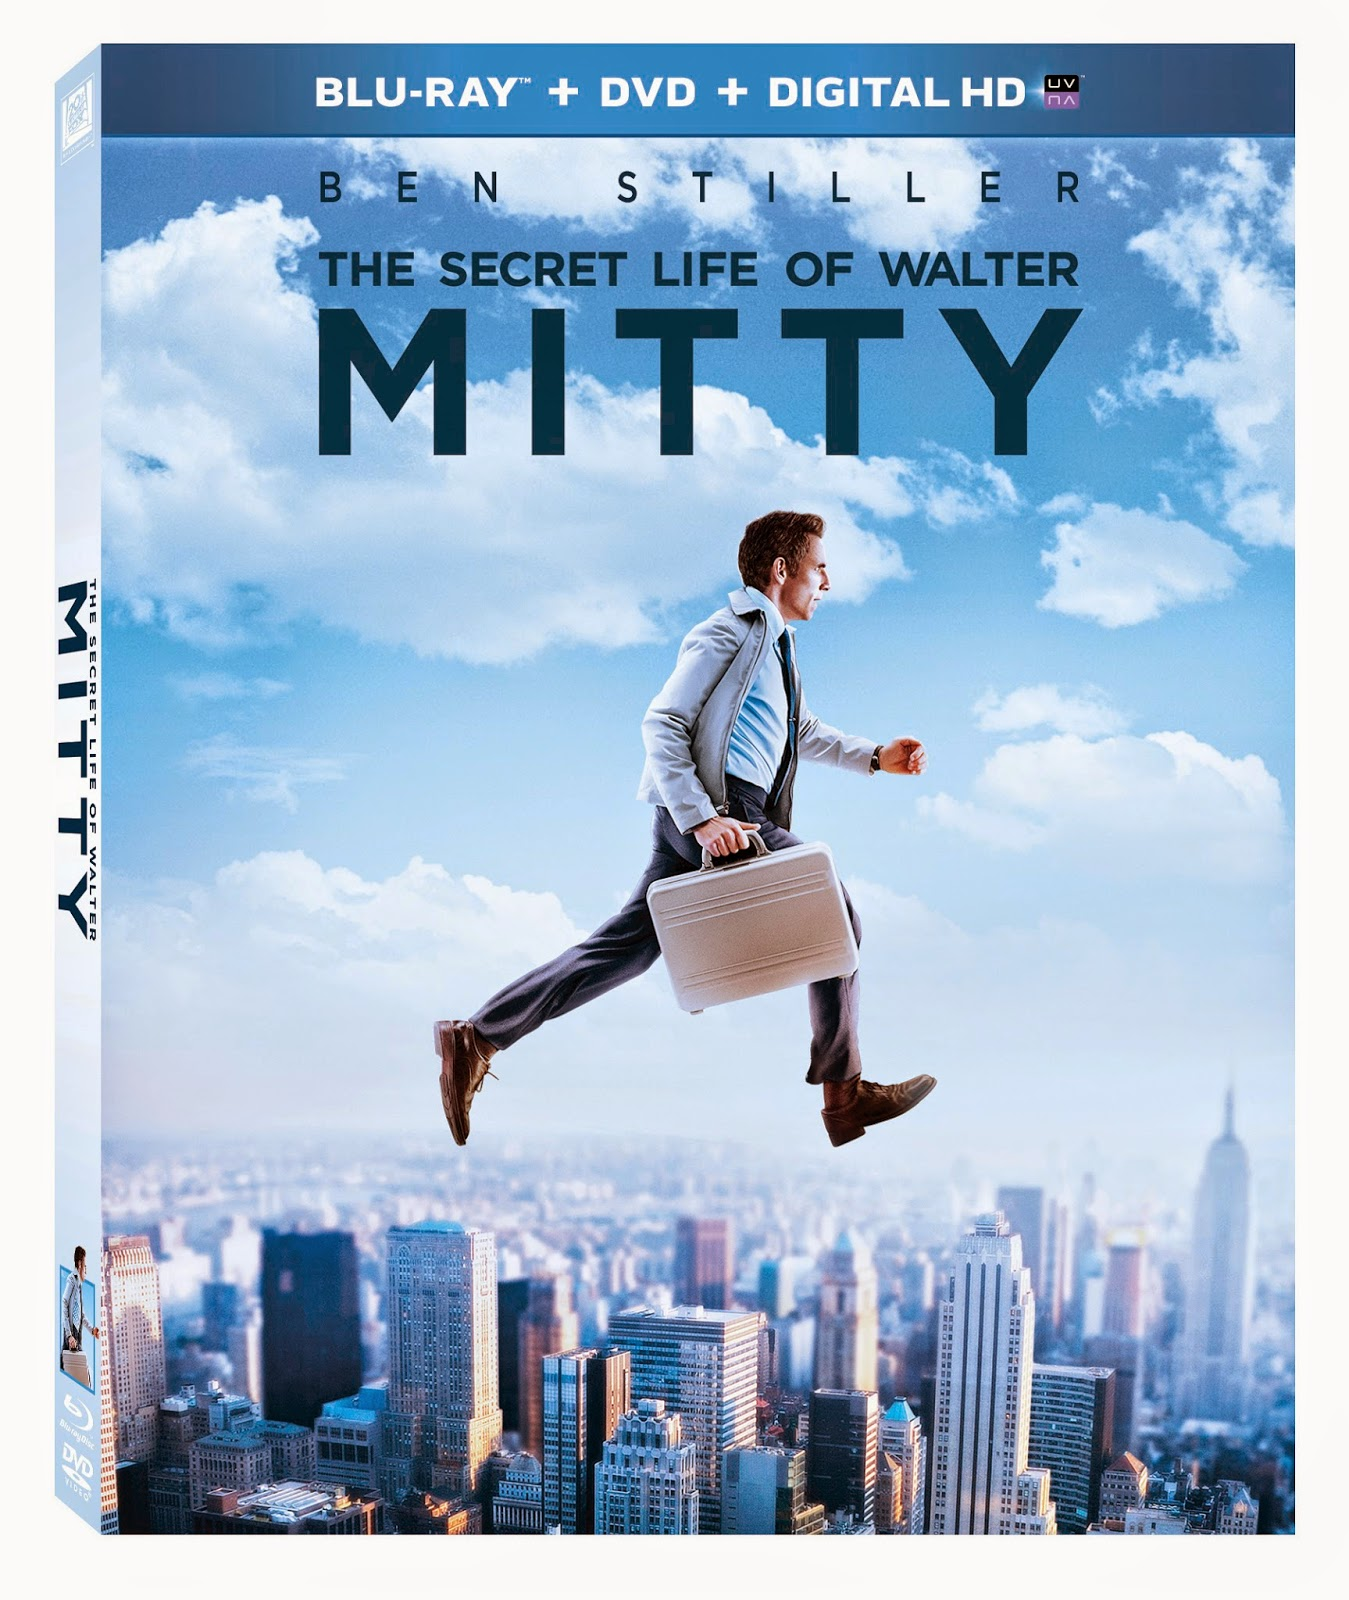 The Secret Life of Walter Mitty Blu-ray Giveaway